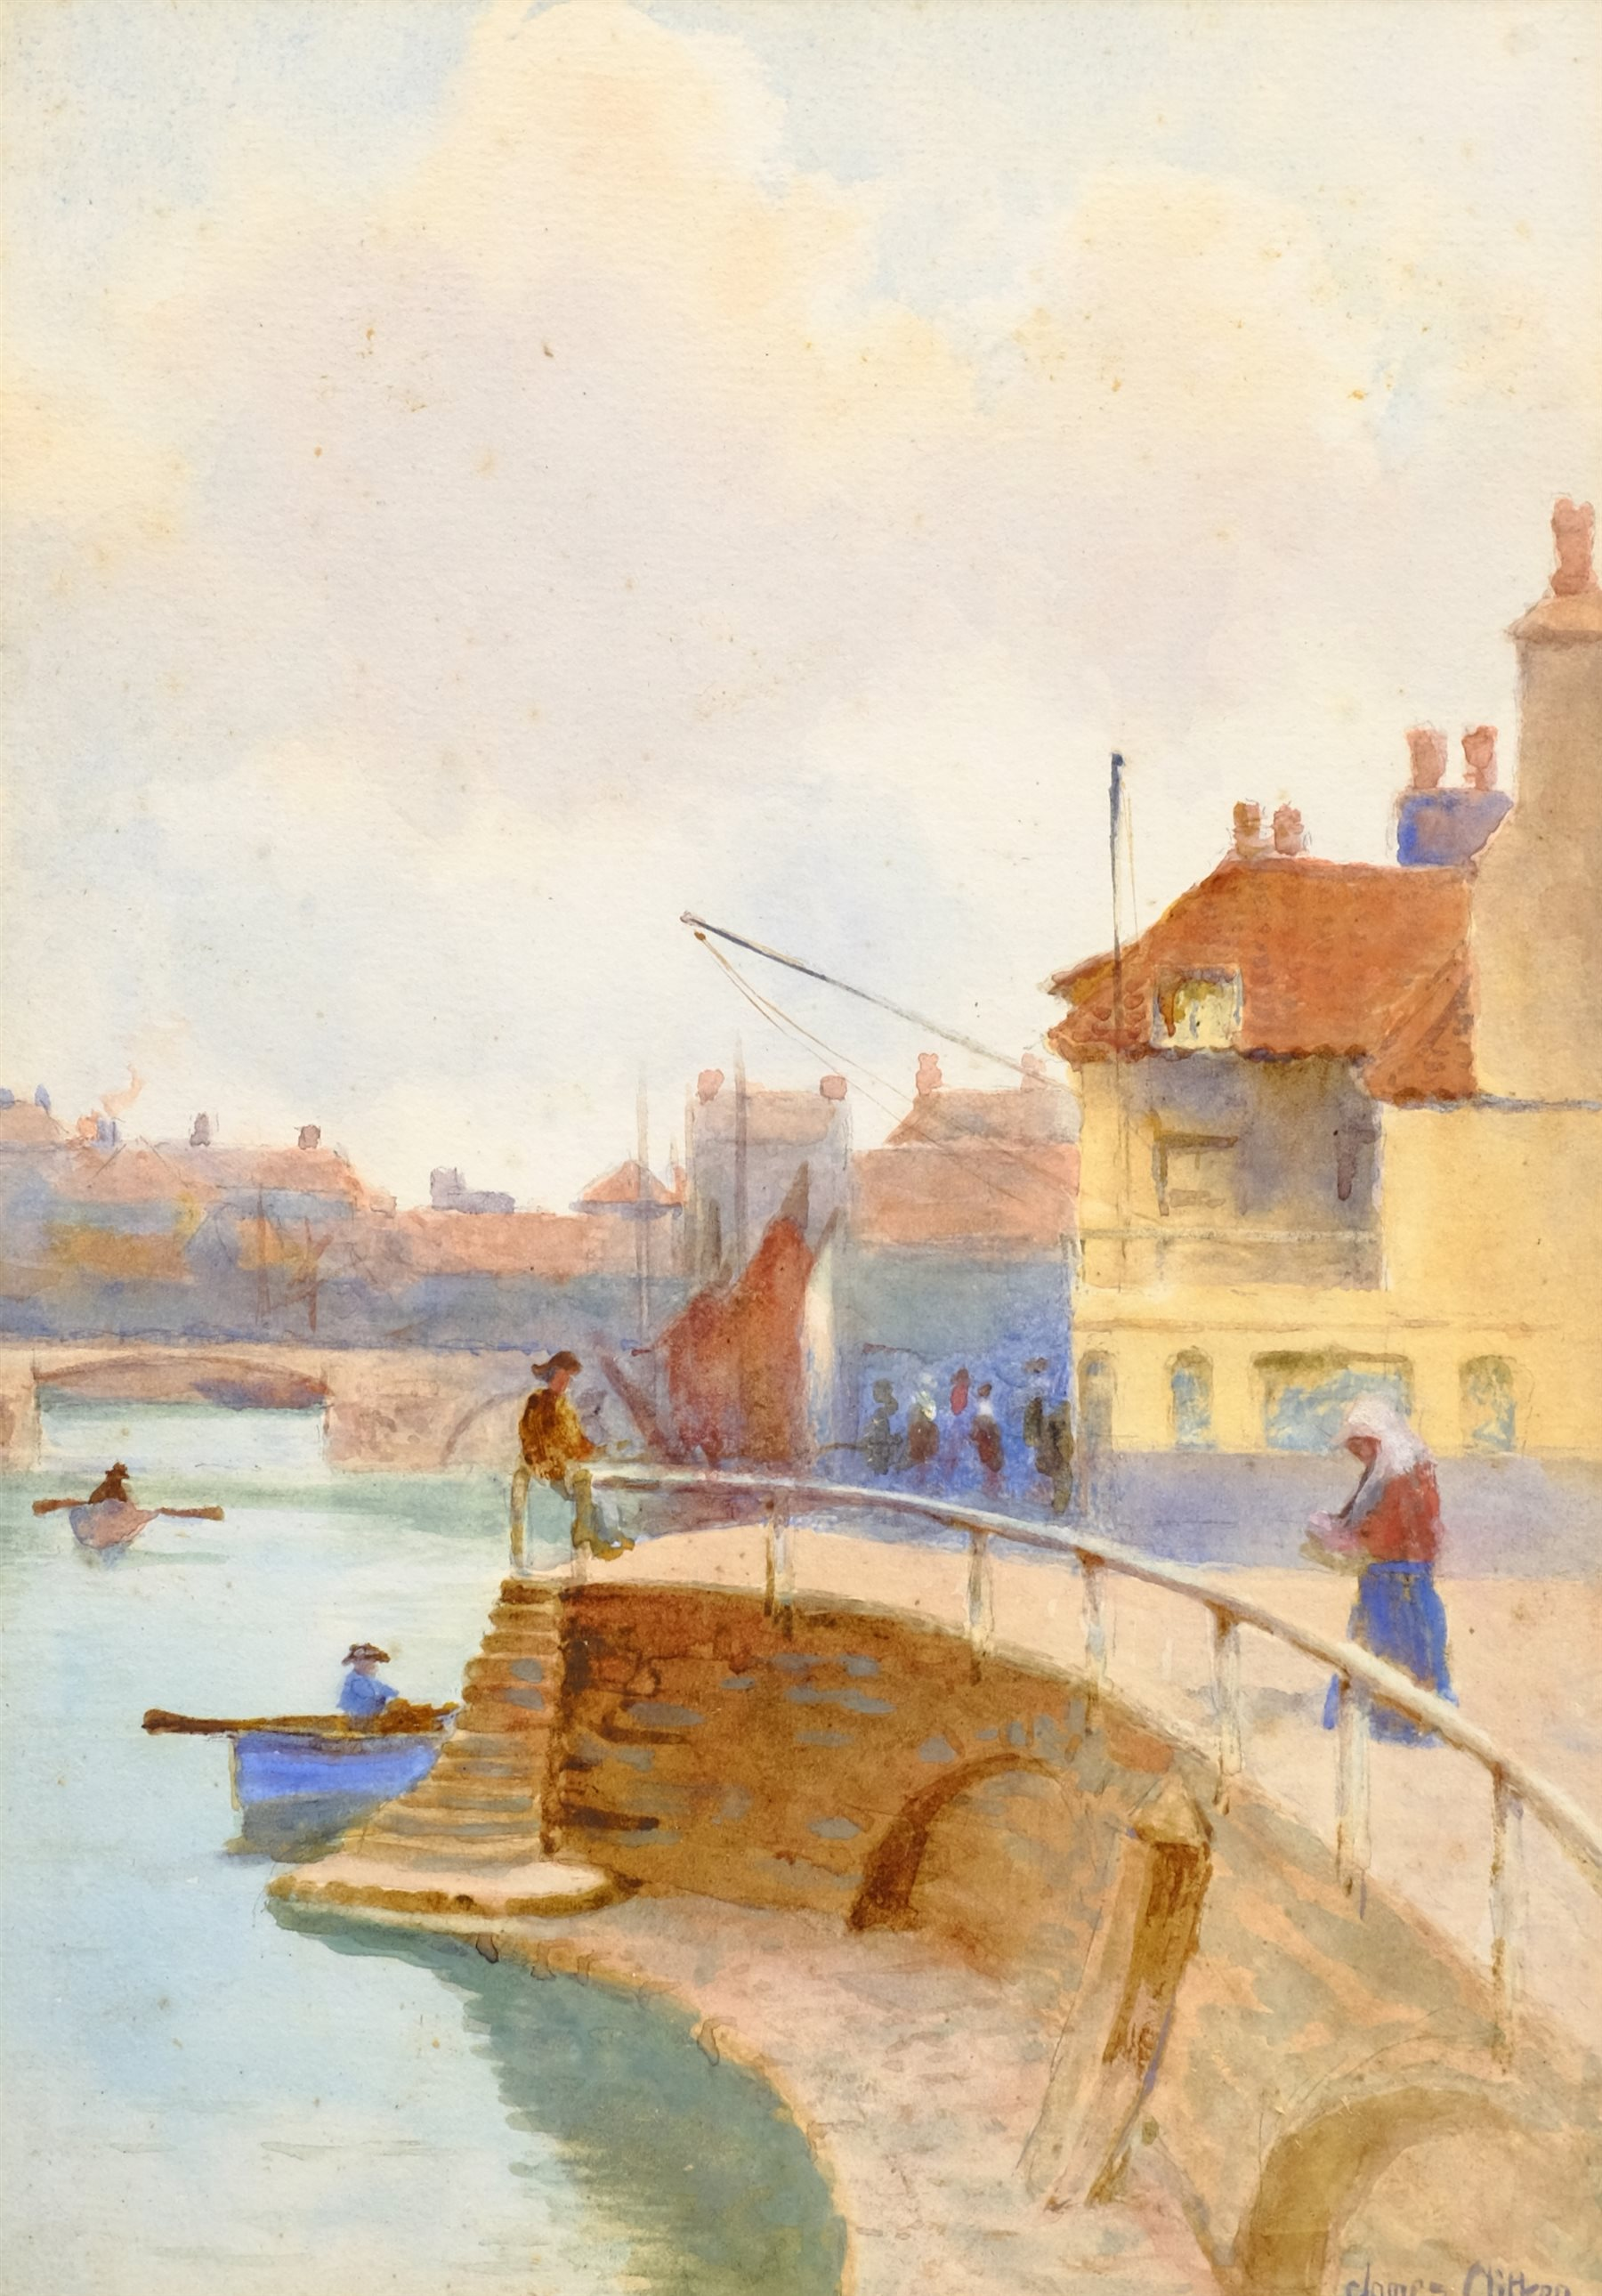 James Alfred Aitken (British 1846-1897): 'Whitby Harbour', watercolour signed, titled and dated 1876 - Image 2 of 4